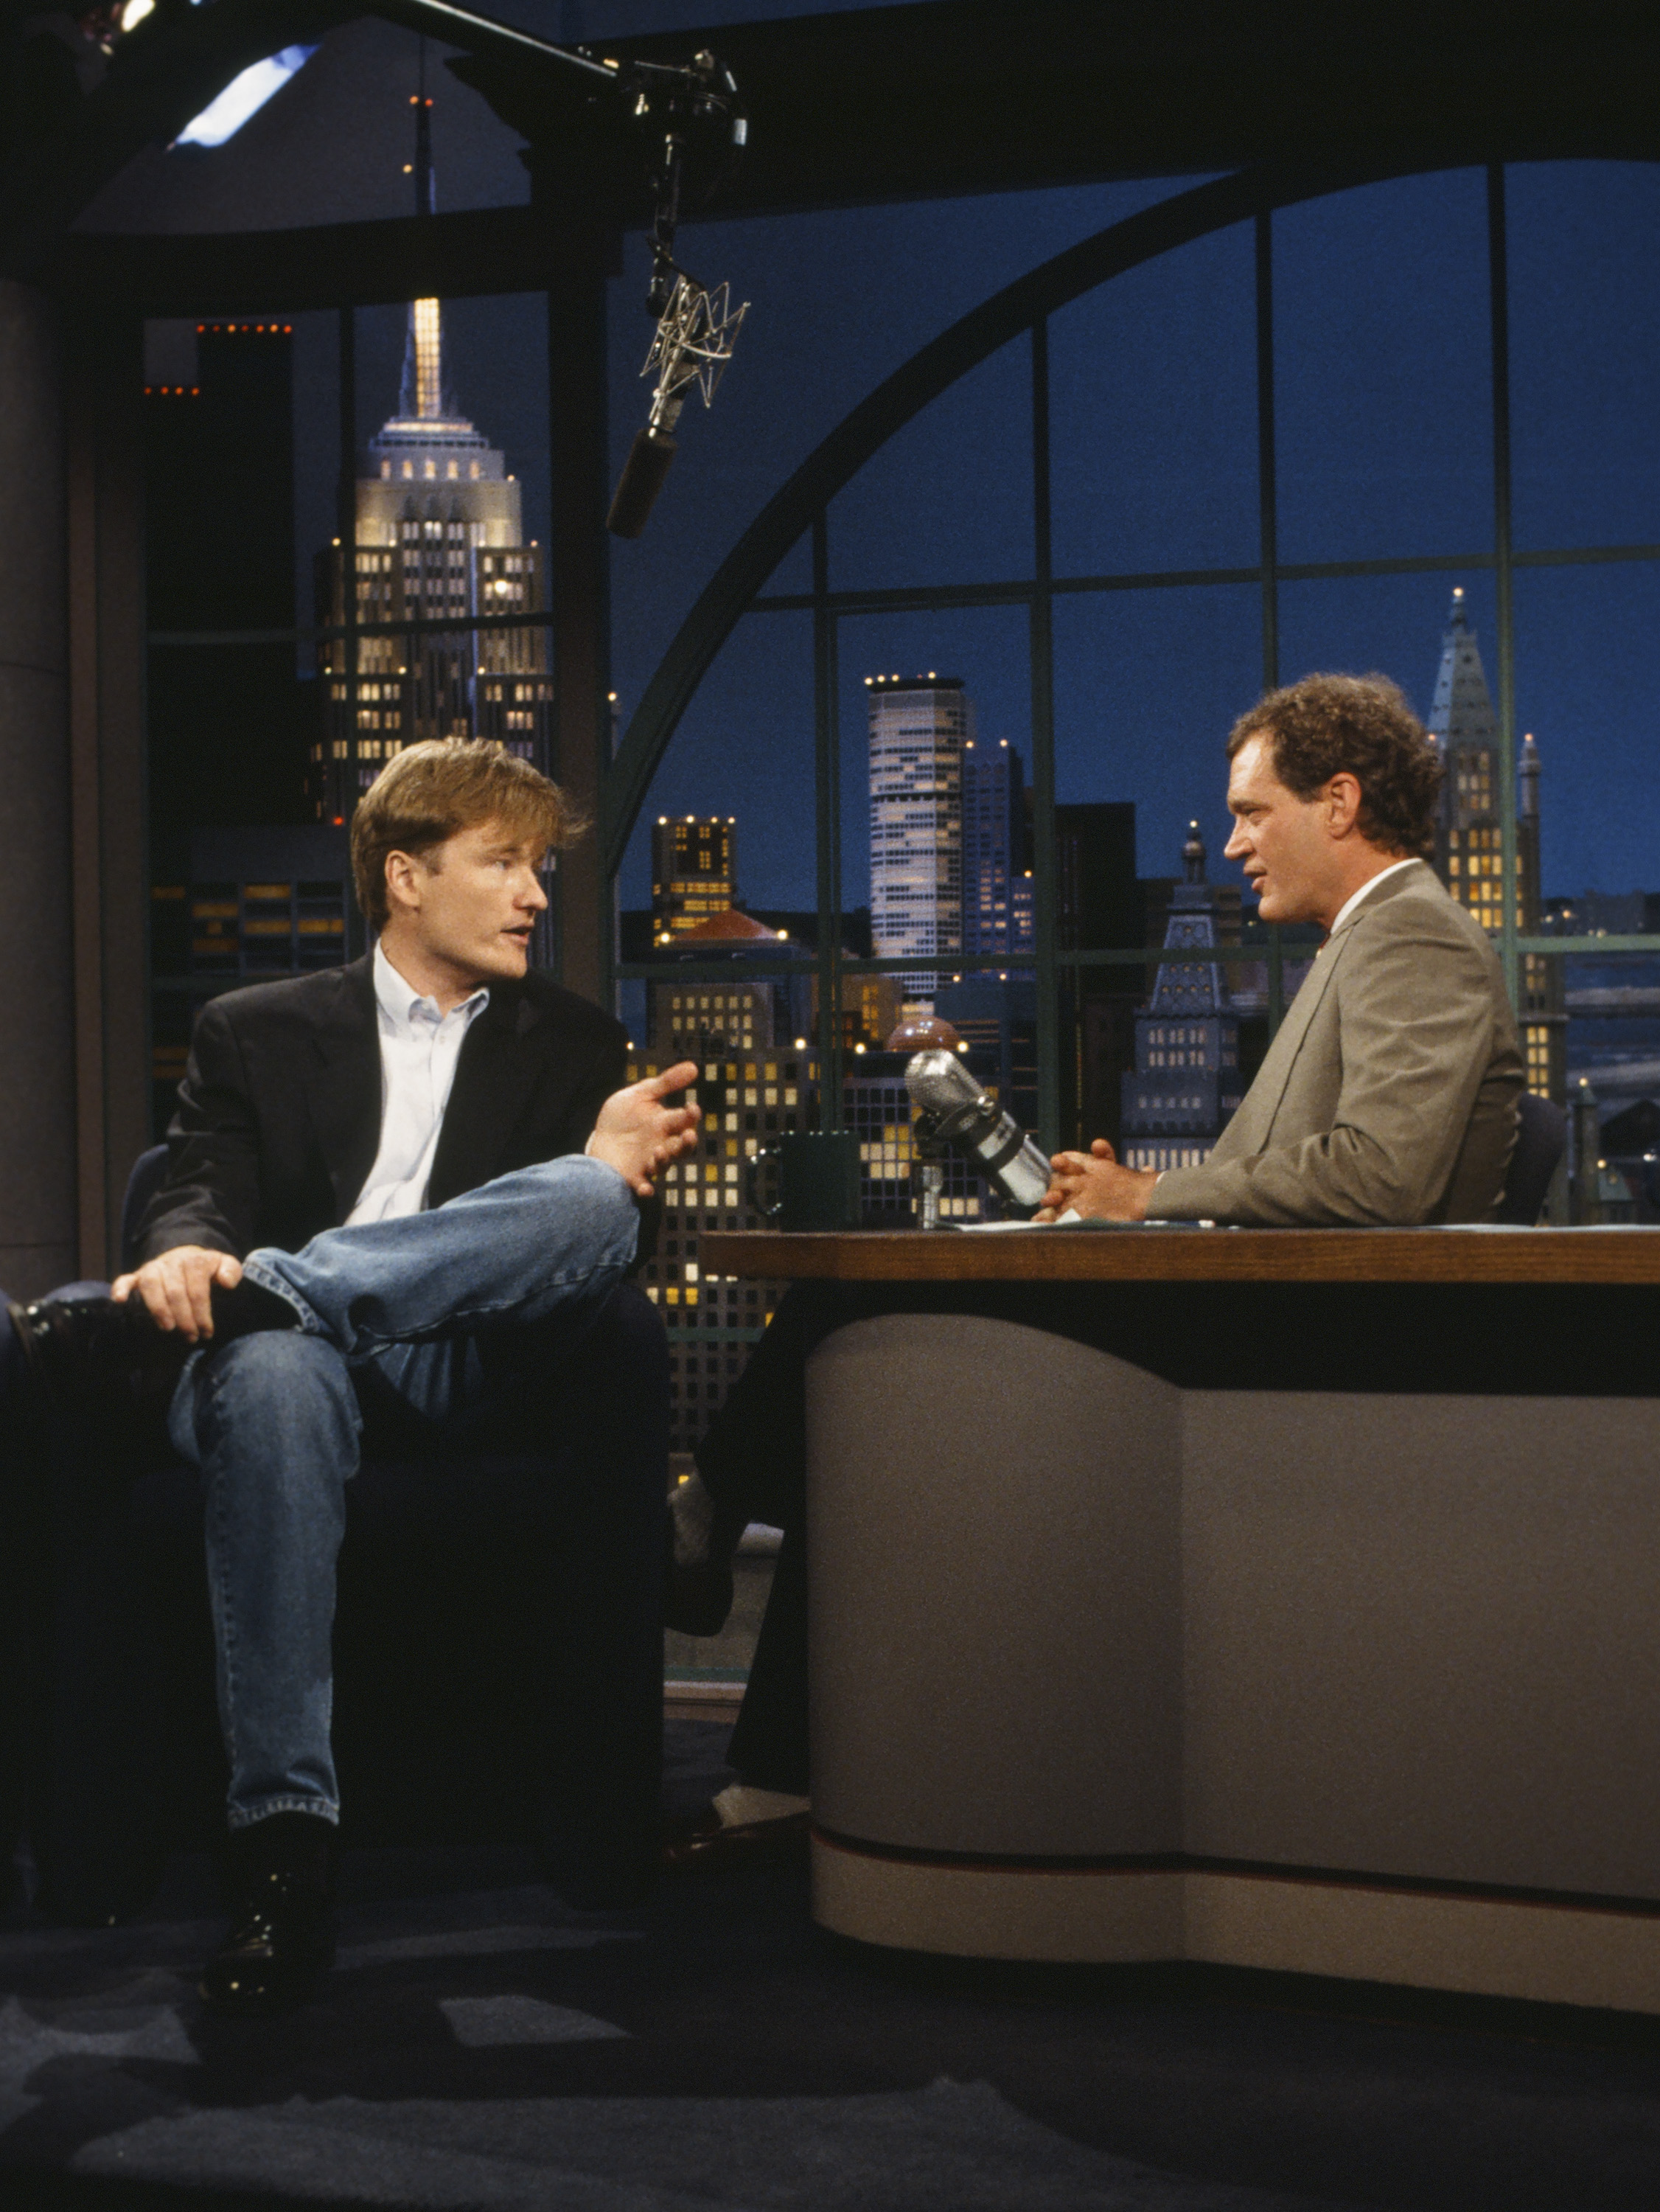 After the cancellation of his morning show, Letterman was given a new show and time slot, <i>Late Night With David Letterman</i> which immediately followed <i>The Tonight Show Starring Johnny Carson</i>. The first version of the <i>Late Night</i> franchise, debuted on February 1, 1982 and would eventually be succeeded by Conan O'Brien, seen above.